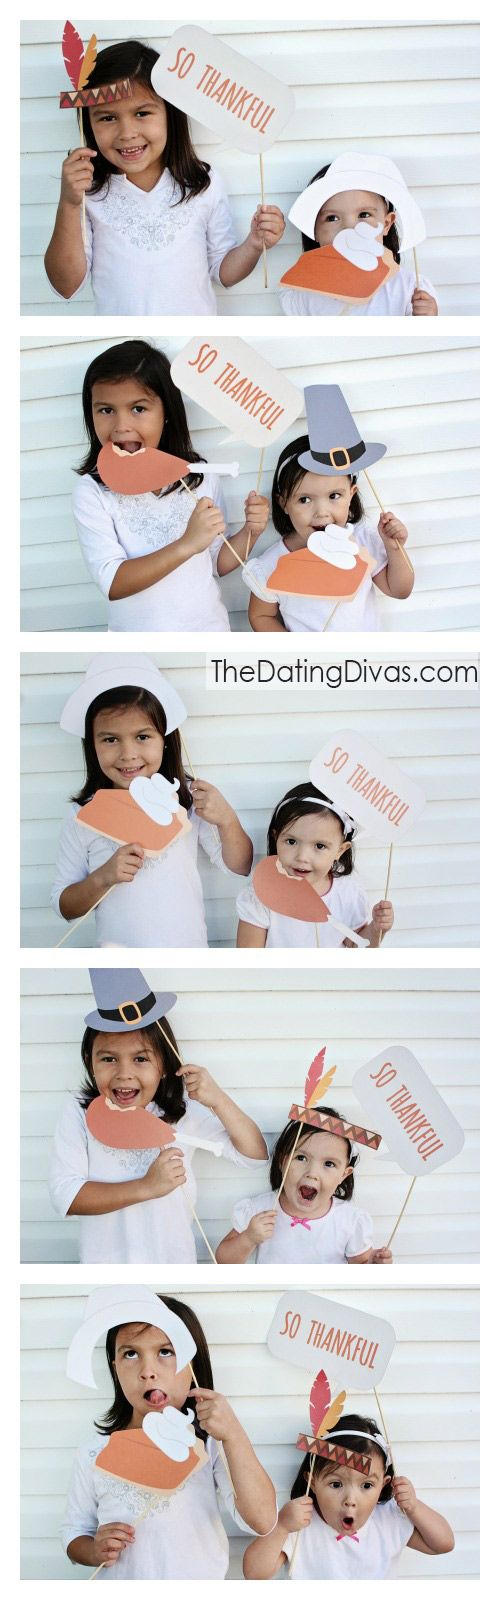 Want to snap some FUN pictures of the fam this Thanksgiving? Then hurry and grab these free Thanksgiving photo booth props. Time to make and capture some memories!